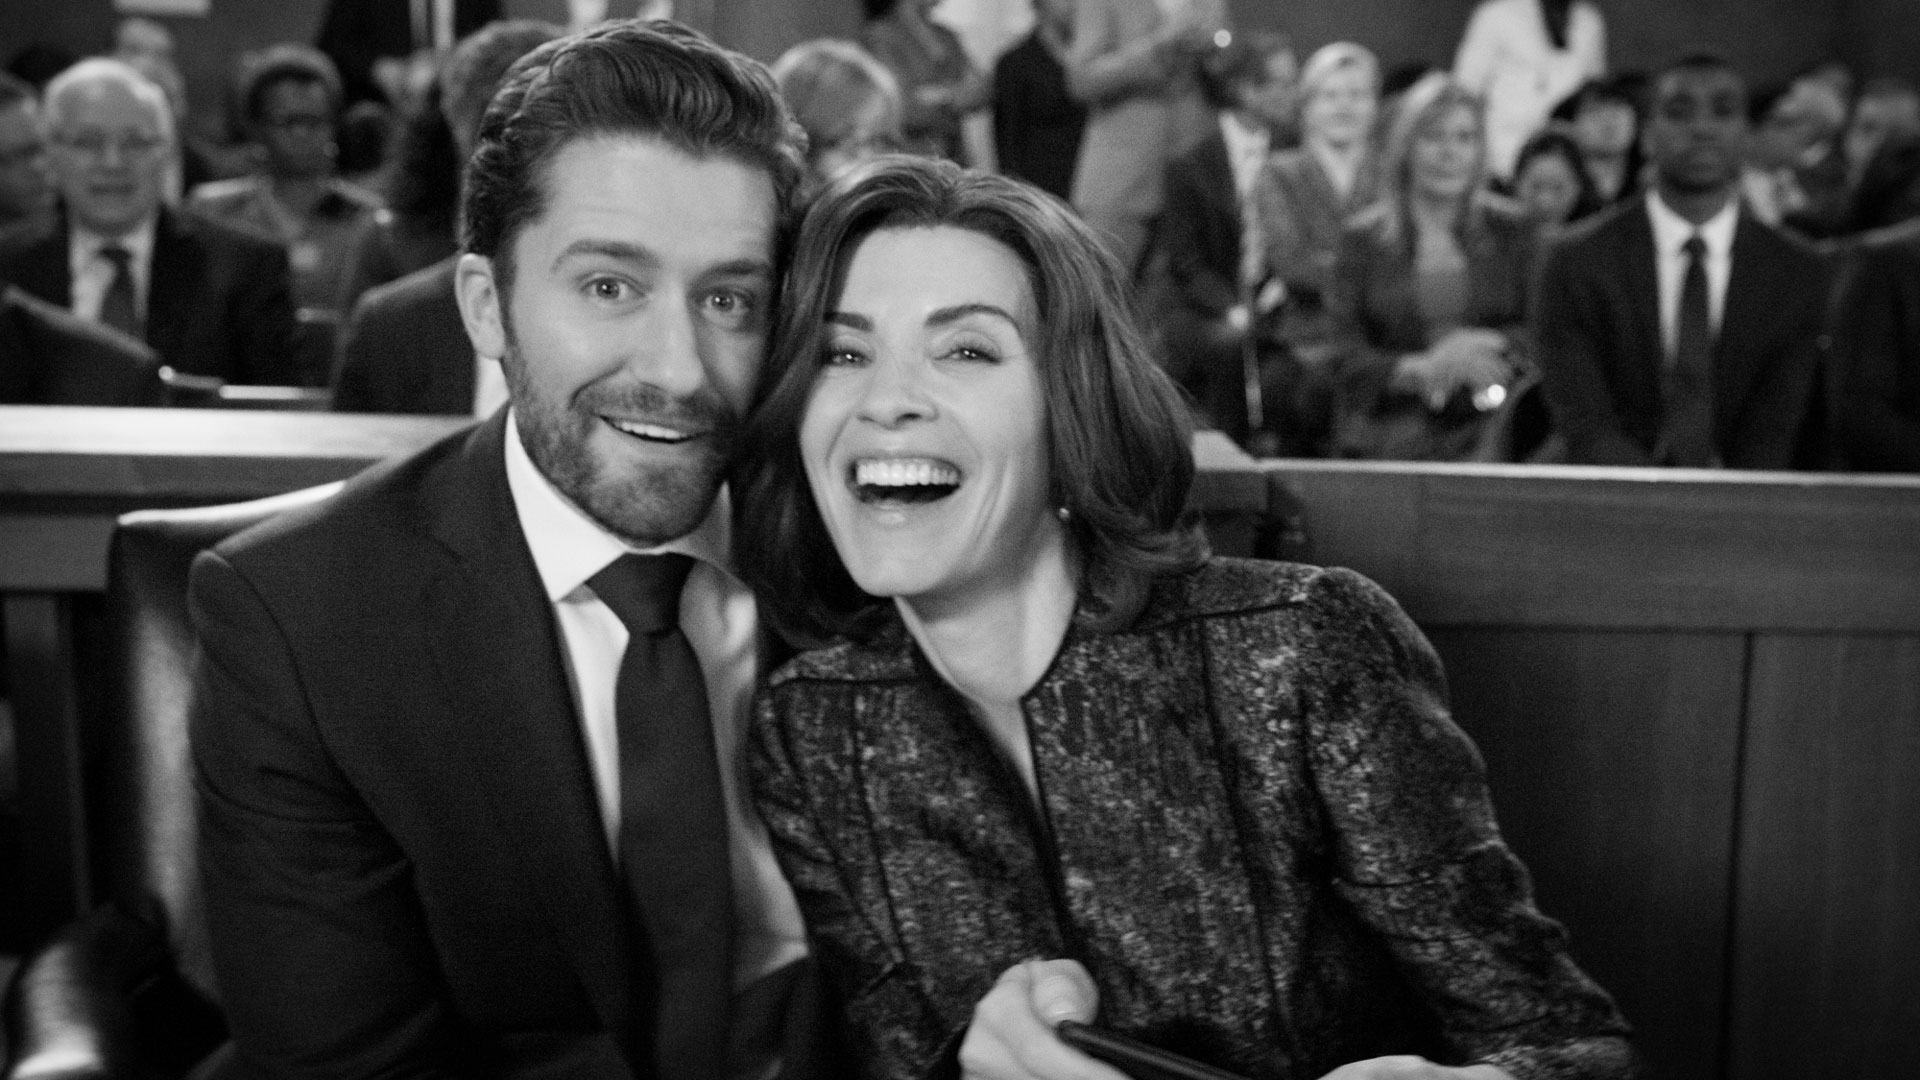 Matthew Morrison and Julianna Margulies smile on set.